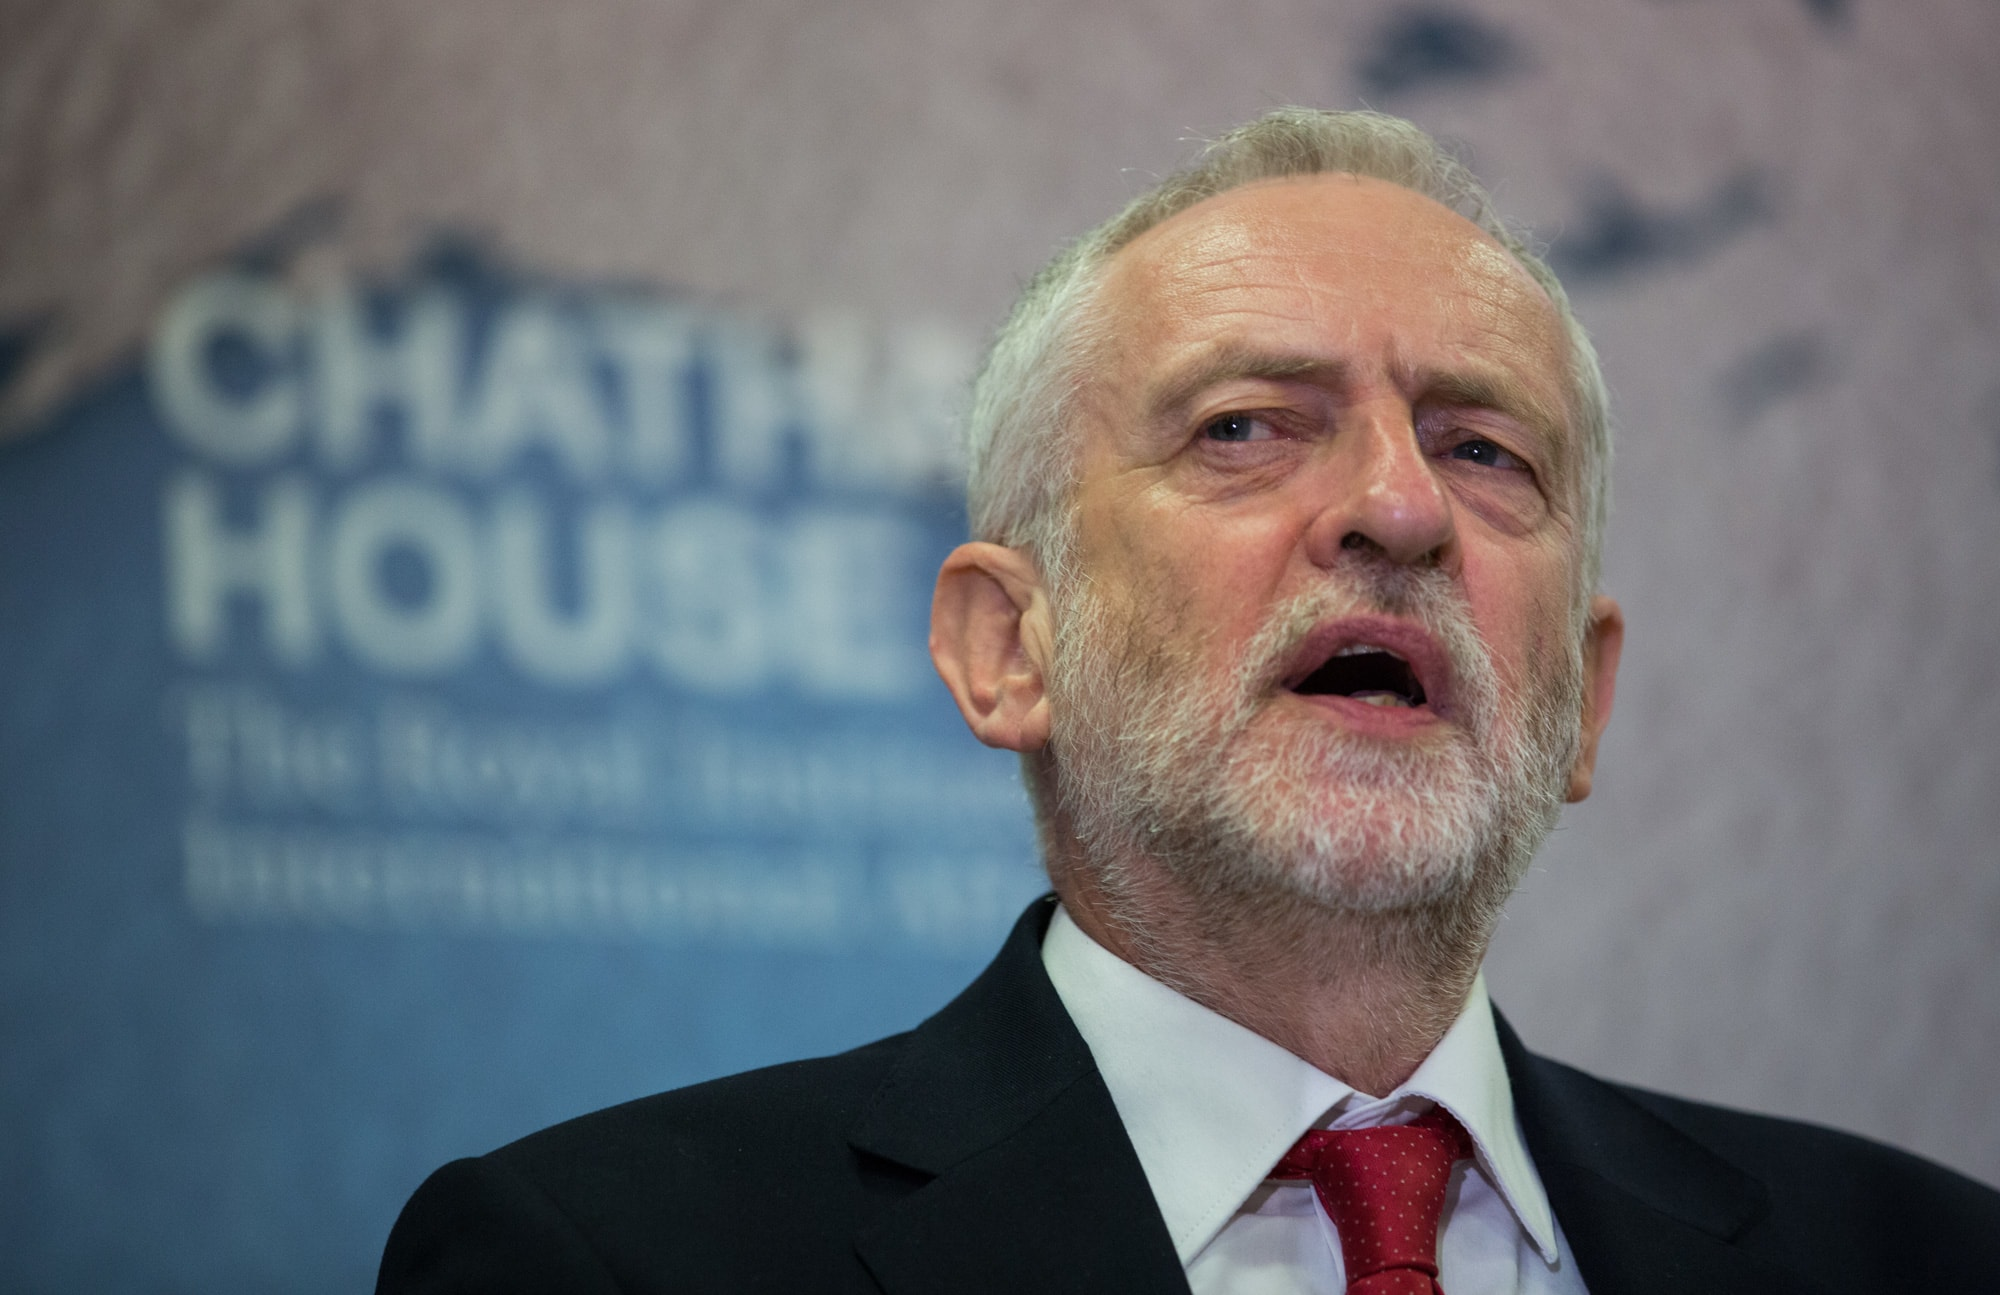 59 Times Jeremy Corbyn Condemned Anti-Semetism, Sexism, Homophobia, and More